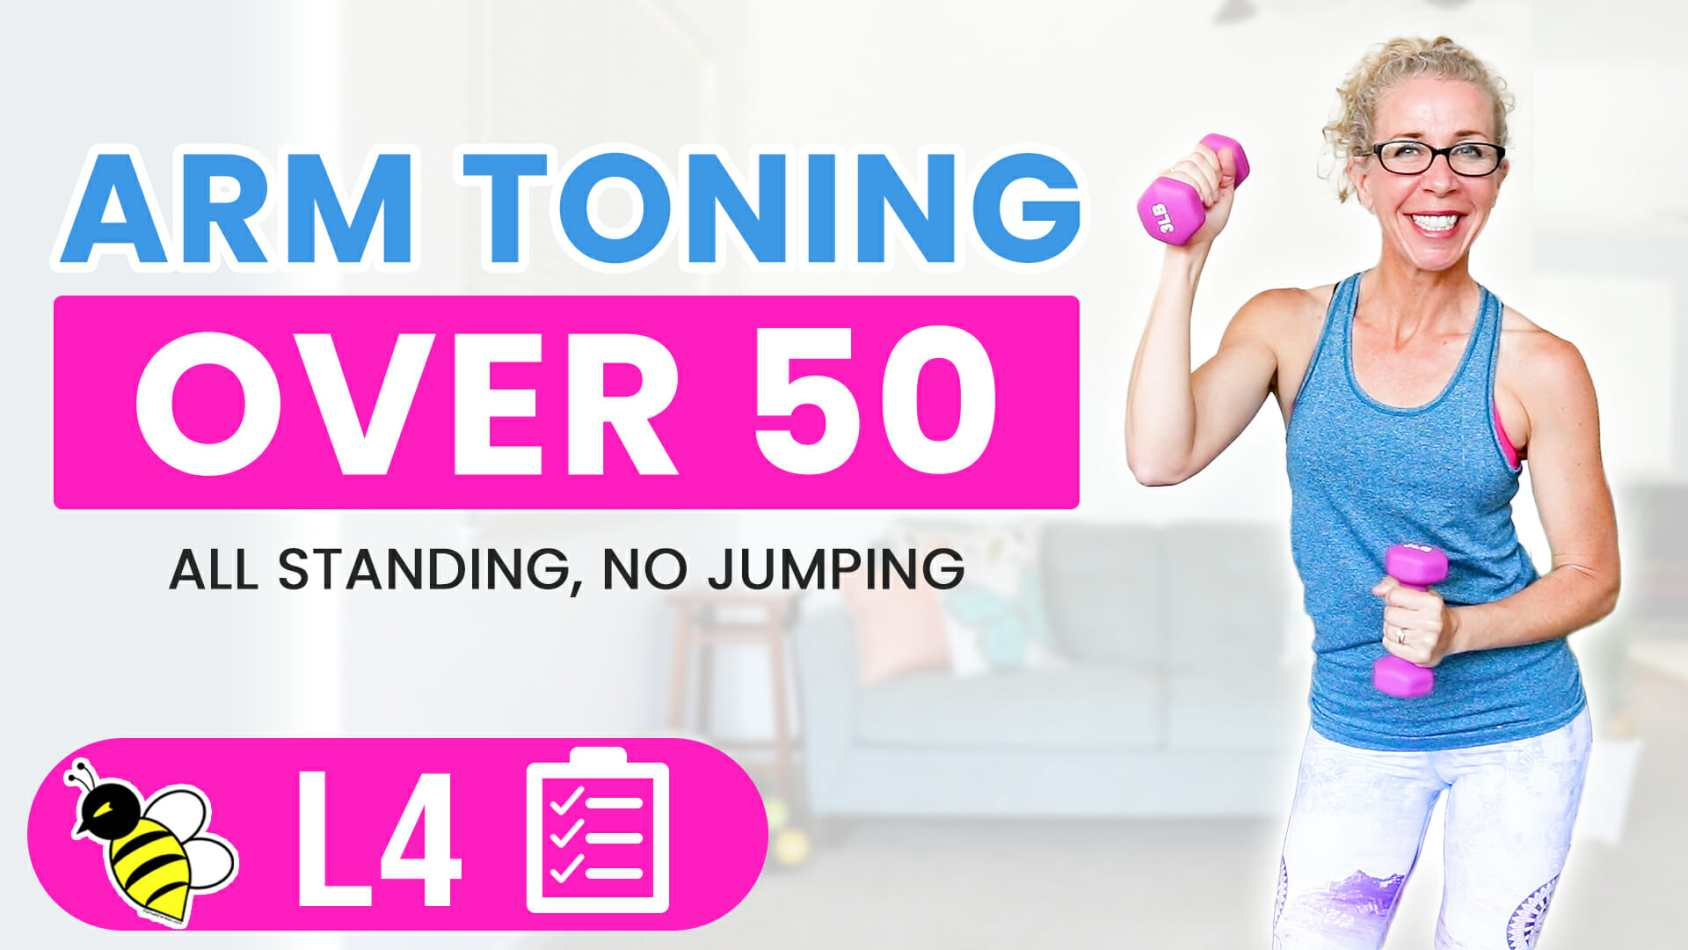 30 Minute Arm Toning Workout for Women Over 50